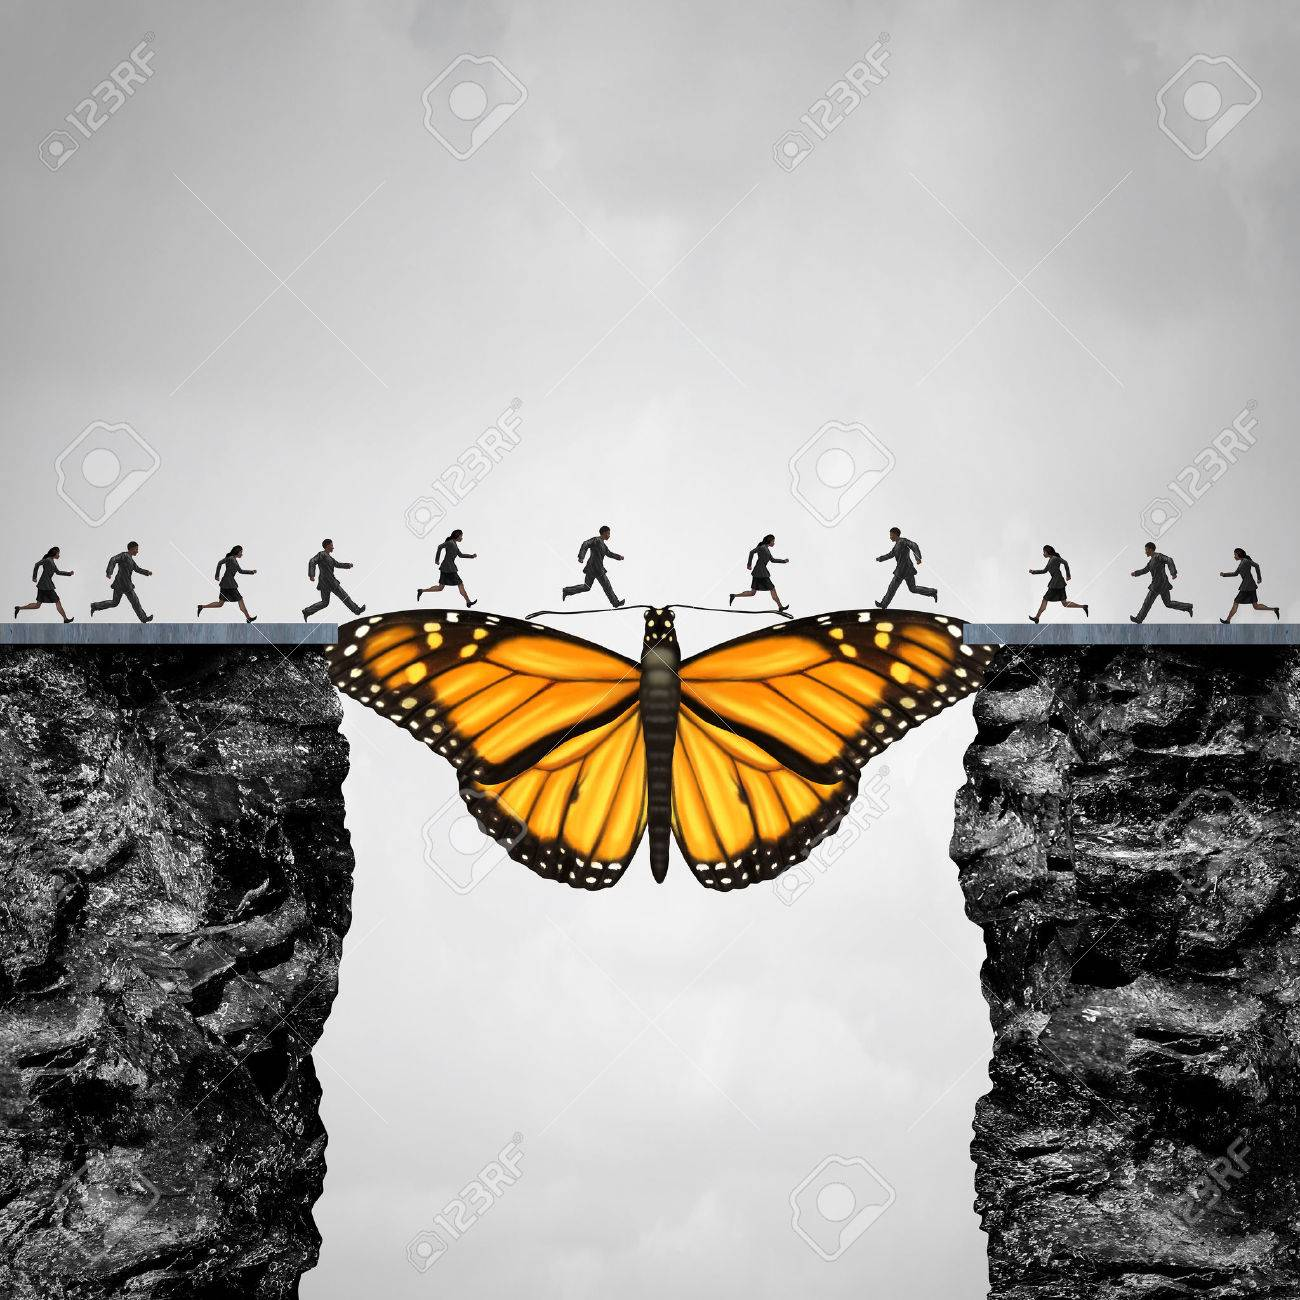 Opportunity and transition concept or migration as a butterfly acting as a bridge between two cliffs for people to go to their journey as a symbol for hope and faith with 3D illustration elements. - 65565963